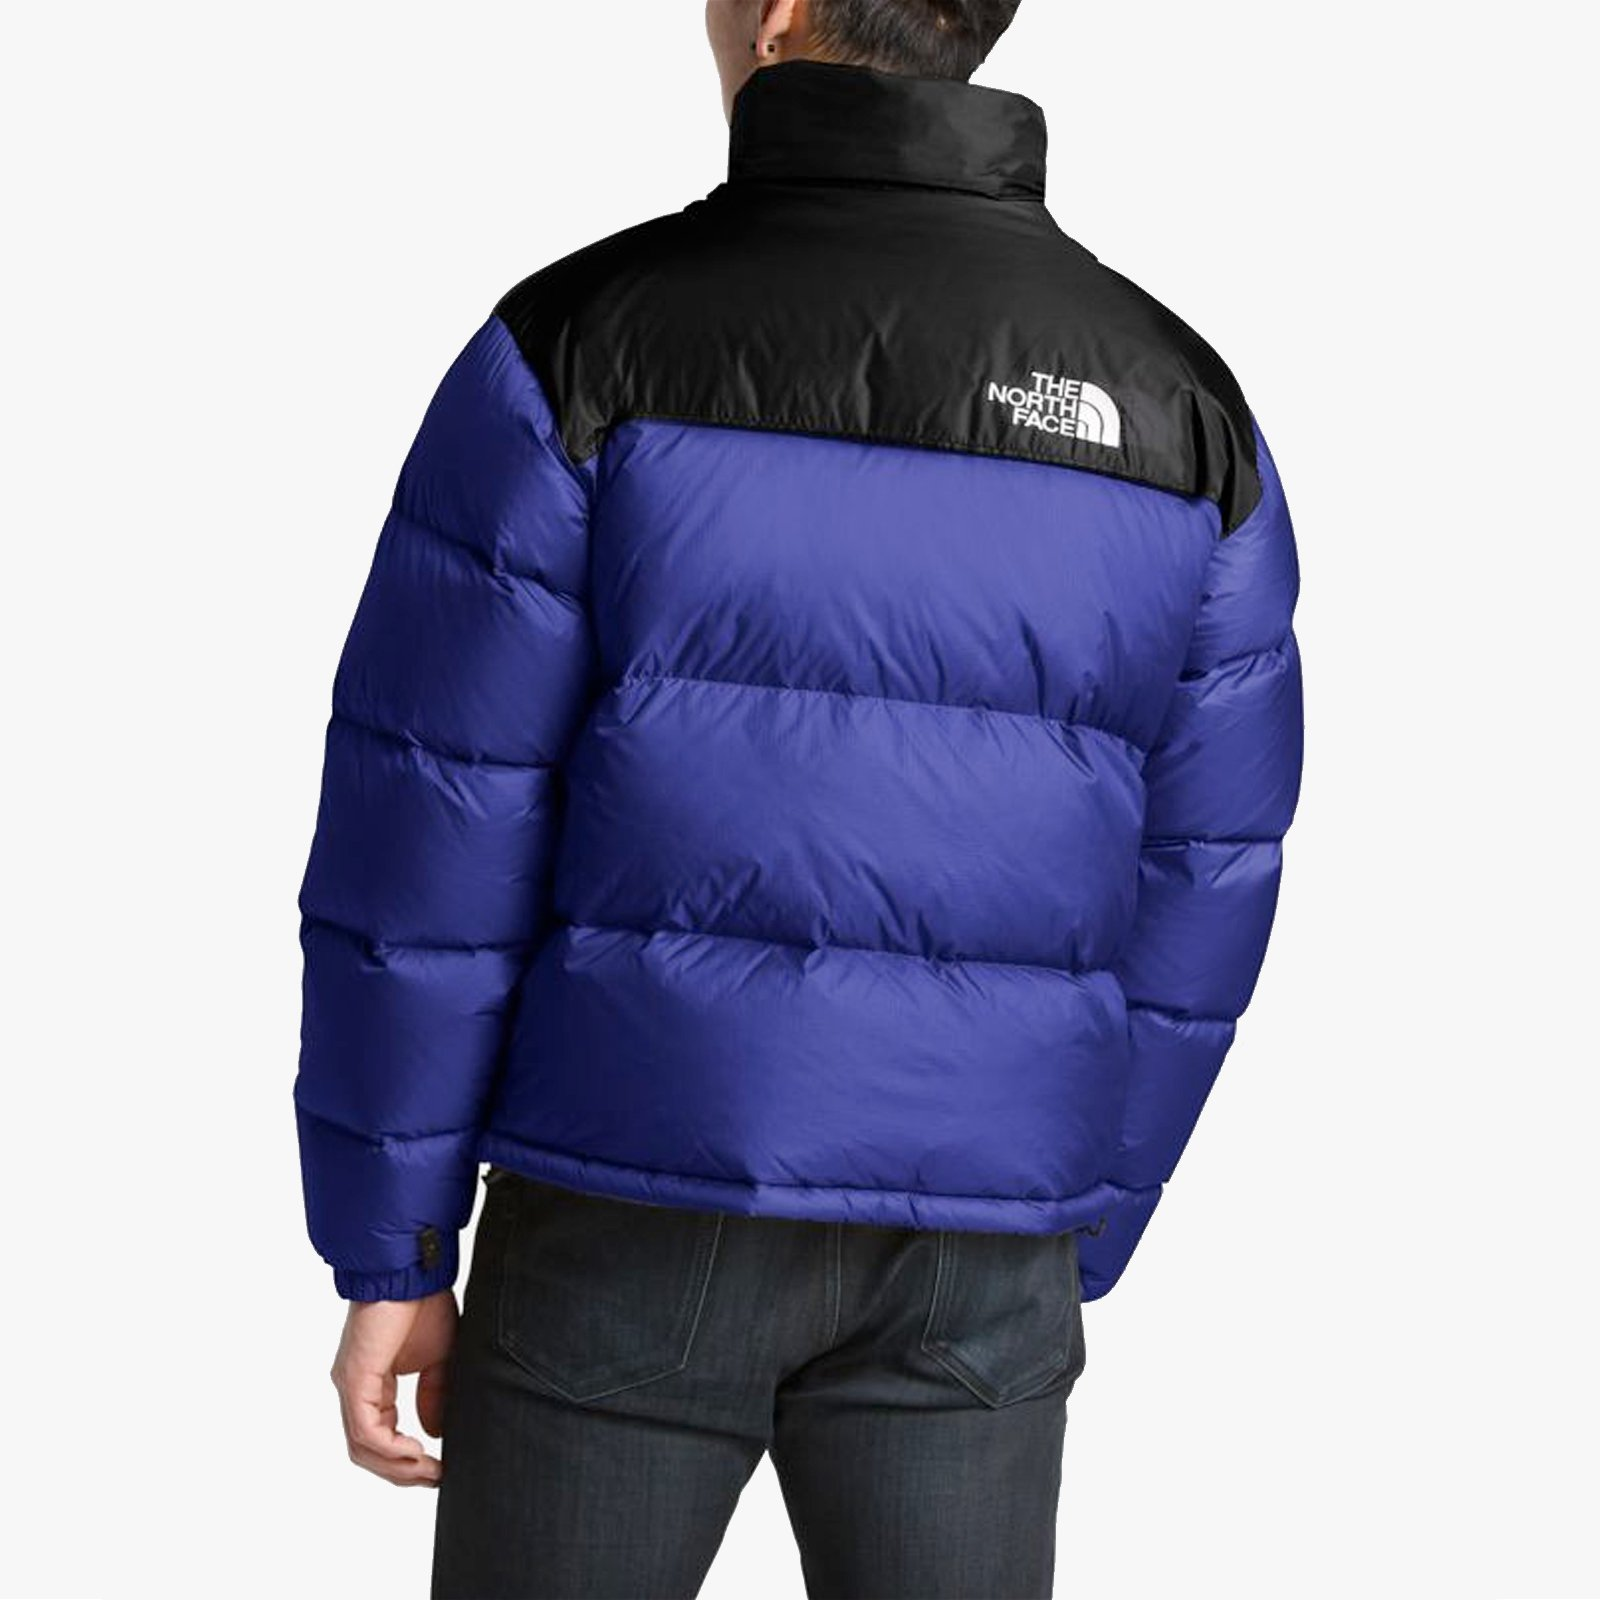 The North Face 1996 Retro Nuptse Jacket Nf0a3c8d5nx